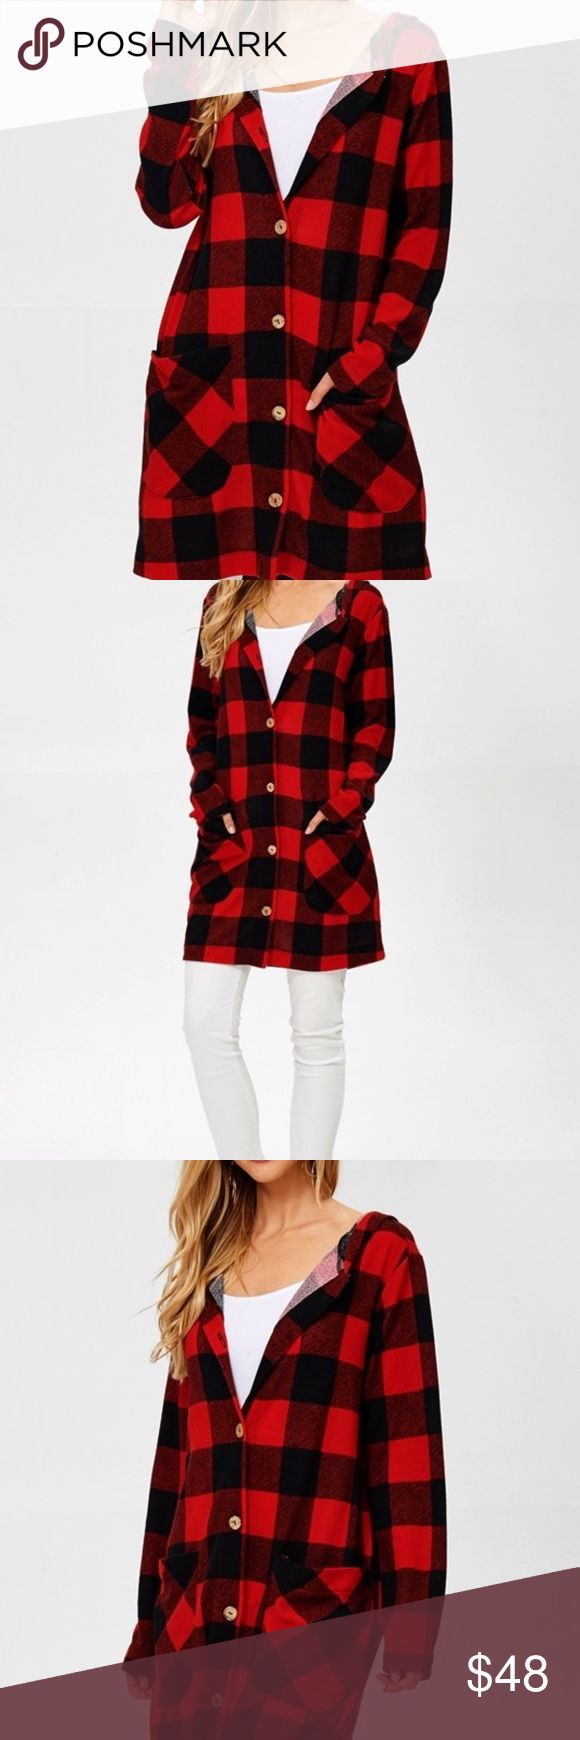 Ladies Red & Black Buffalo Plaid Hoodie Cardigan Ladies buffalo plaid button-up sweater hoodie cardigan with front pockets Makes a great layering piece! 94% Polyester 6% Spandex Hailey & Co Jackets & Coats